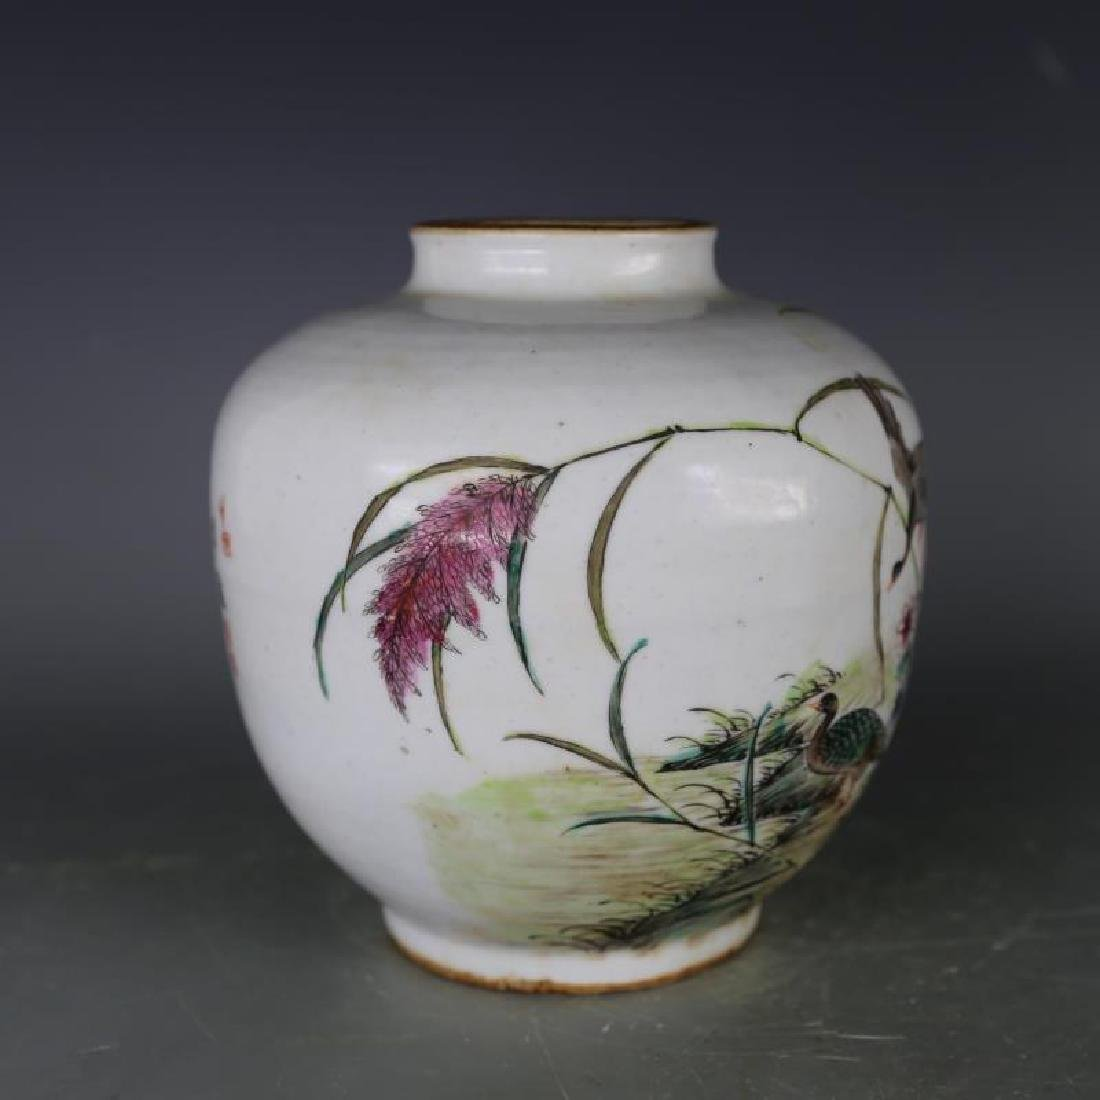 Chinese Qing Dynasty Famille-Rose Porcelain Jar - 3